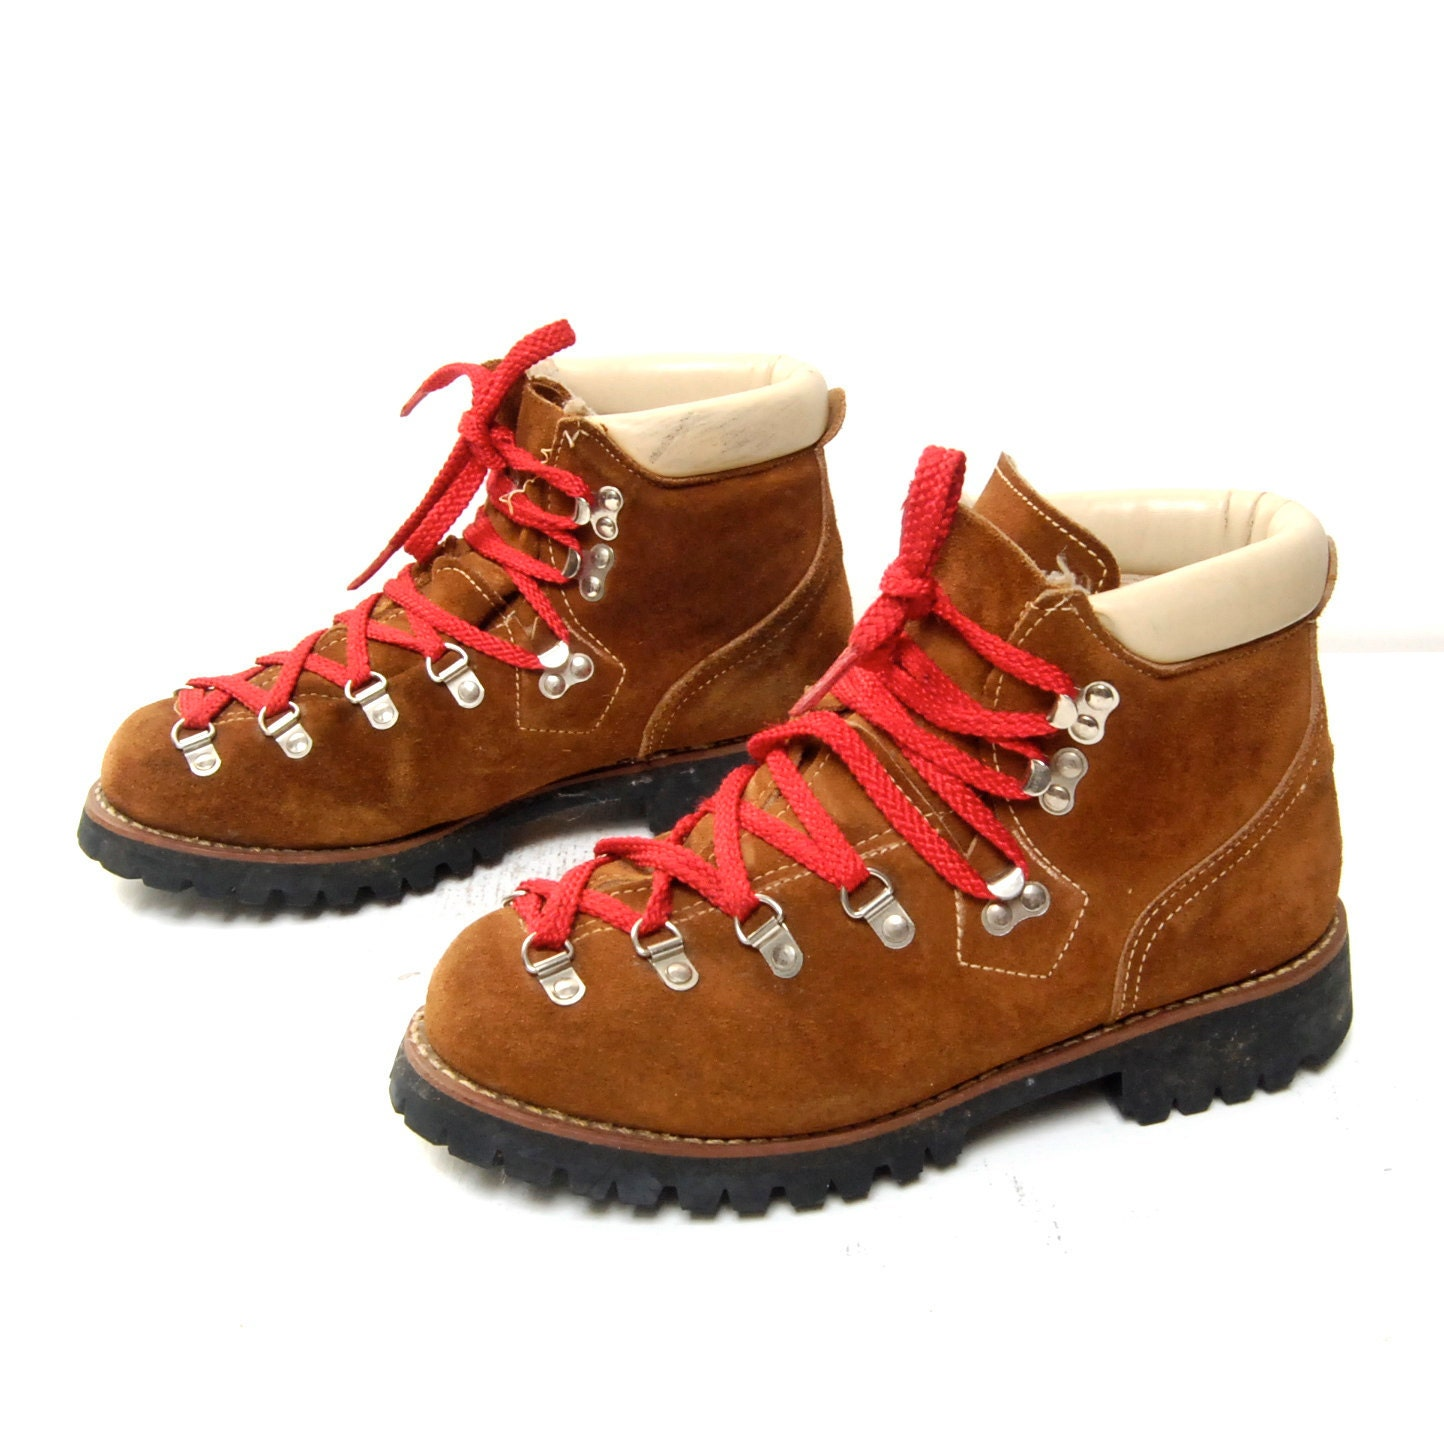 Wonderful  Made In The USA, And The Boots Are Assembled In The USA With The Rocky Original Hiker, You Get The Classic Traditional Brown Fullgrain Leather Hiking Boot With Red Laces And A Pig Leather Collar Antiqued Brass Hardware Resists